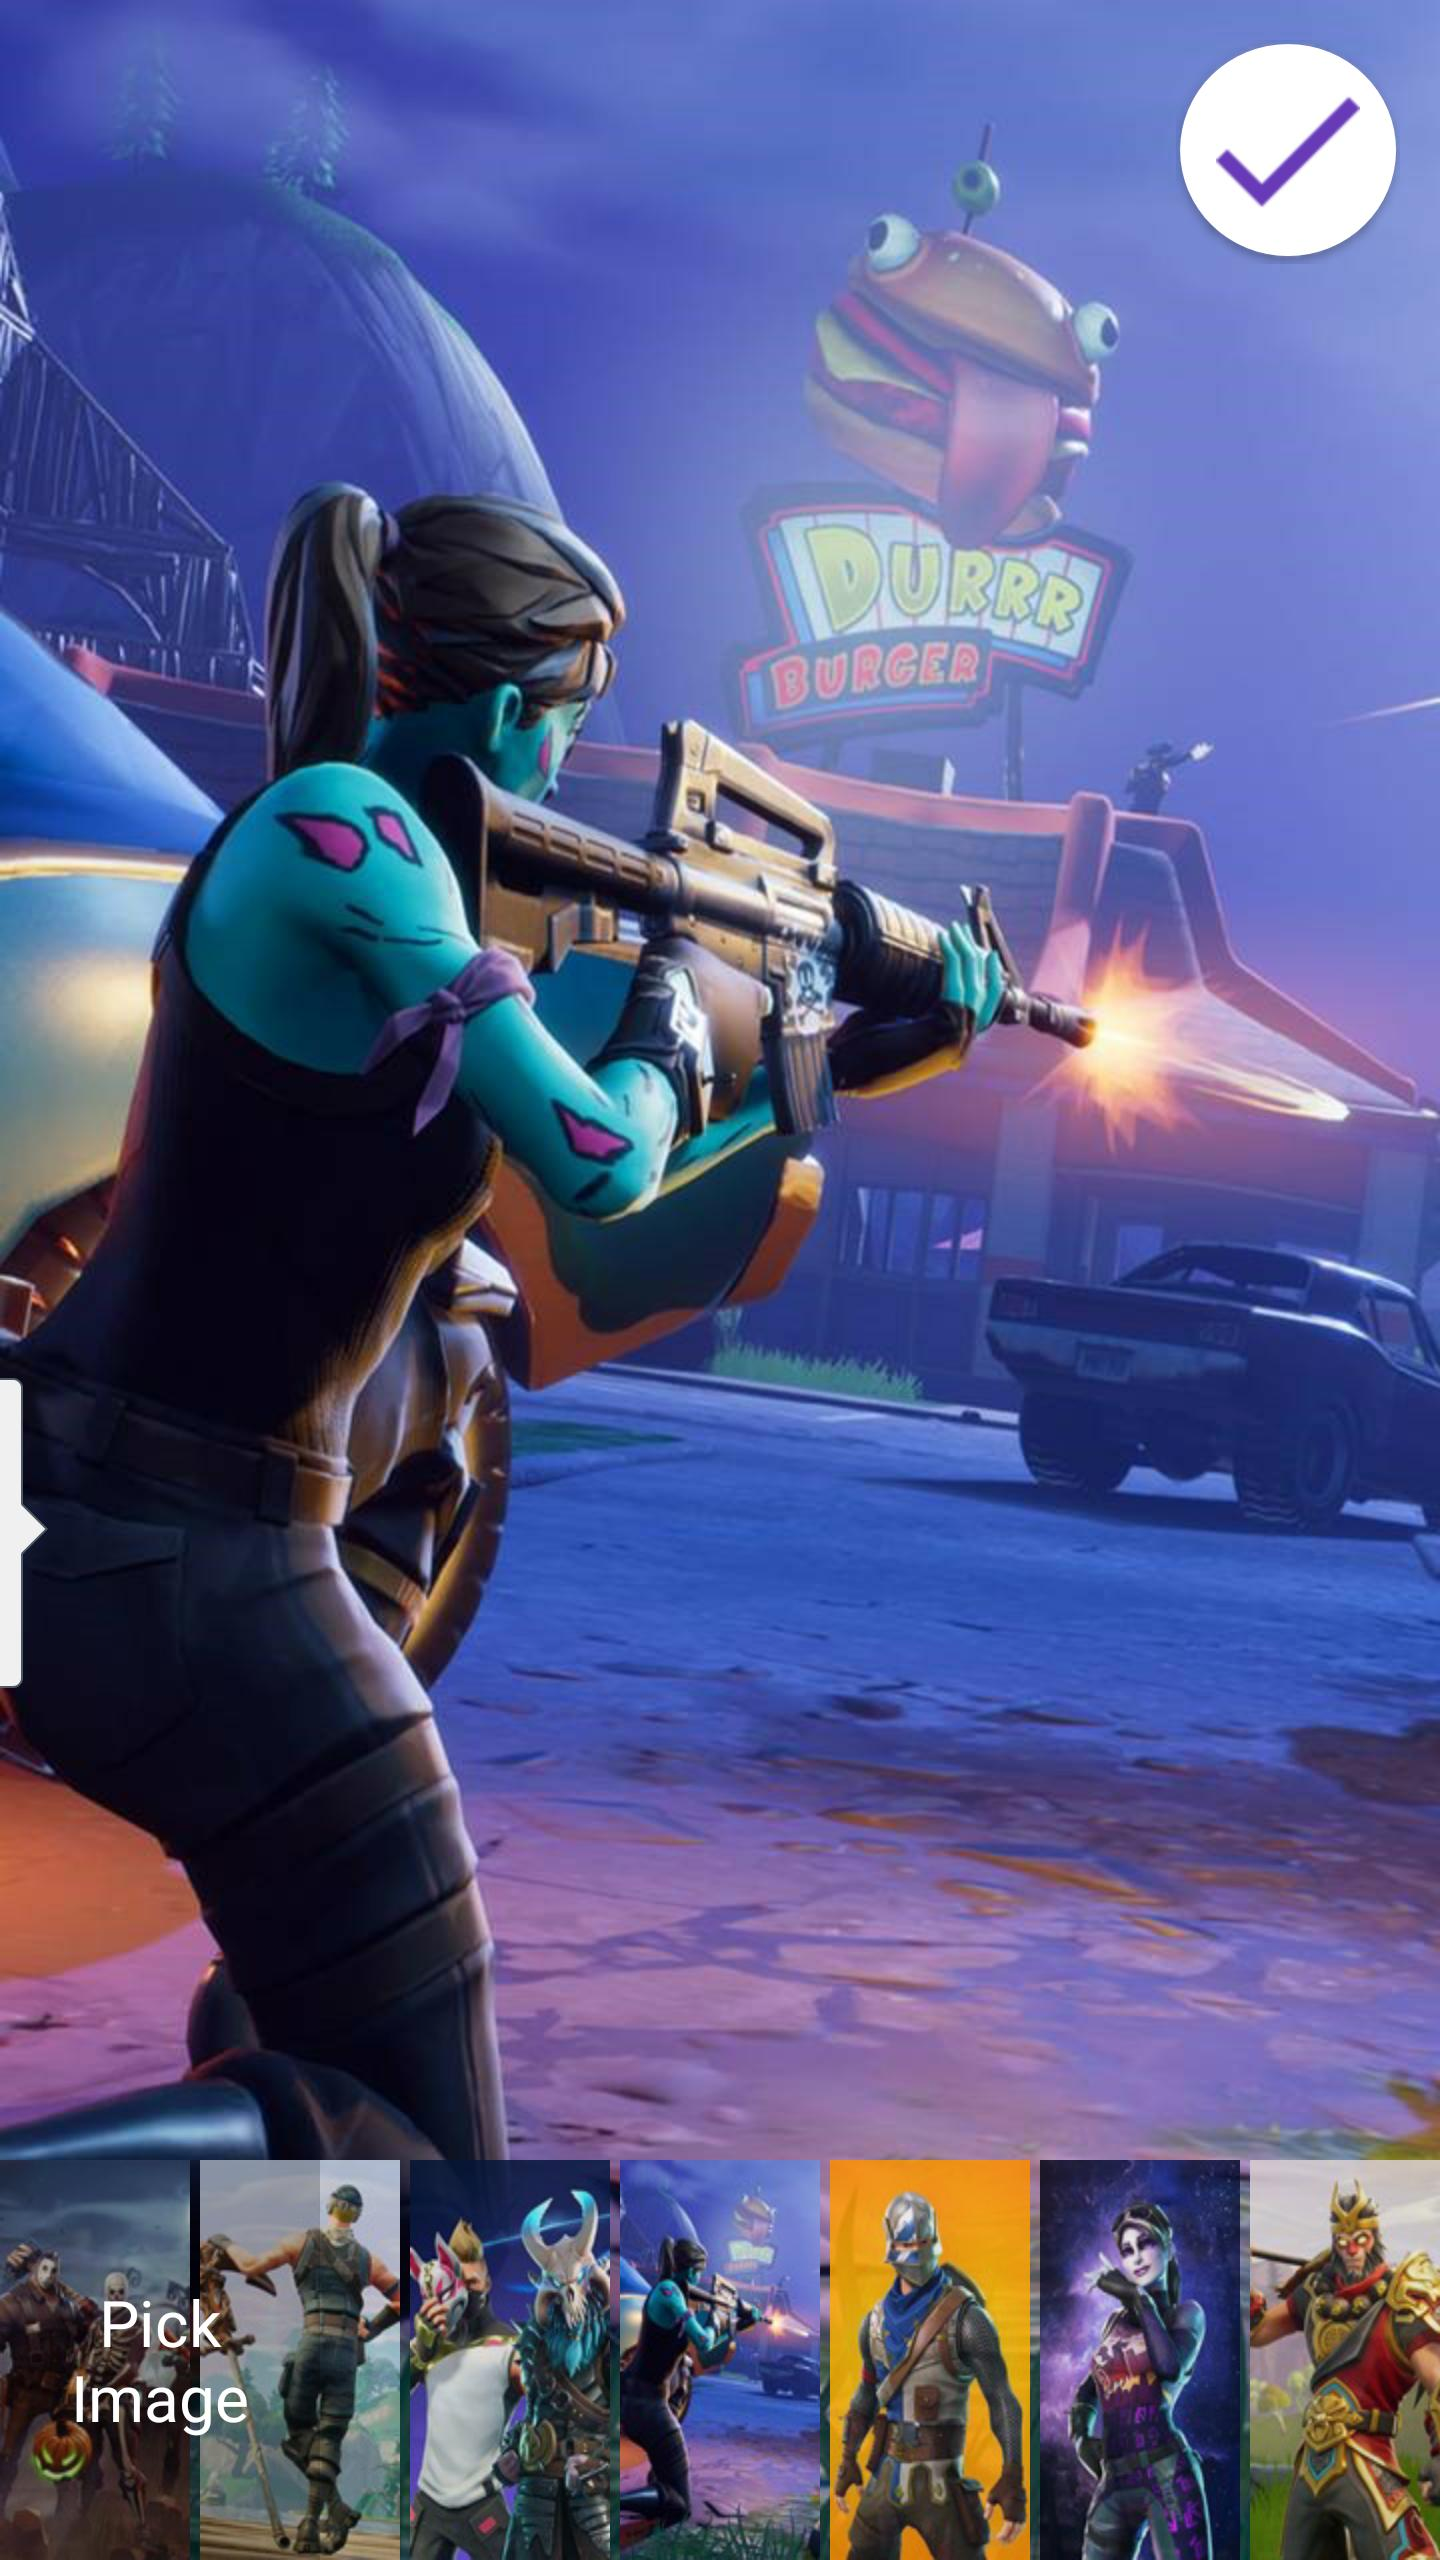 Lock Screen Battle Royale Fortnite Wallpapers For Android Apk Download